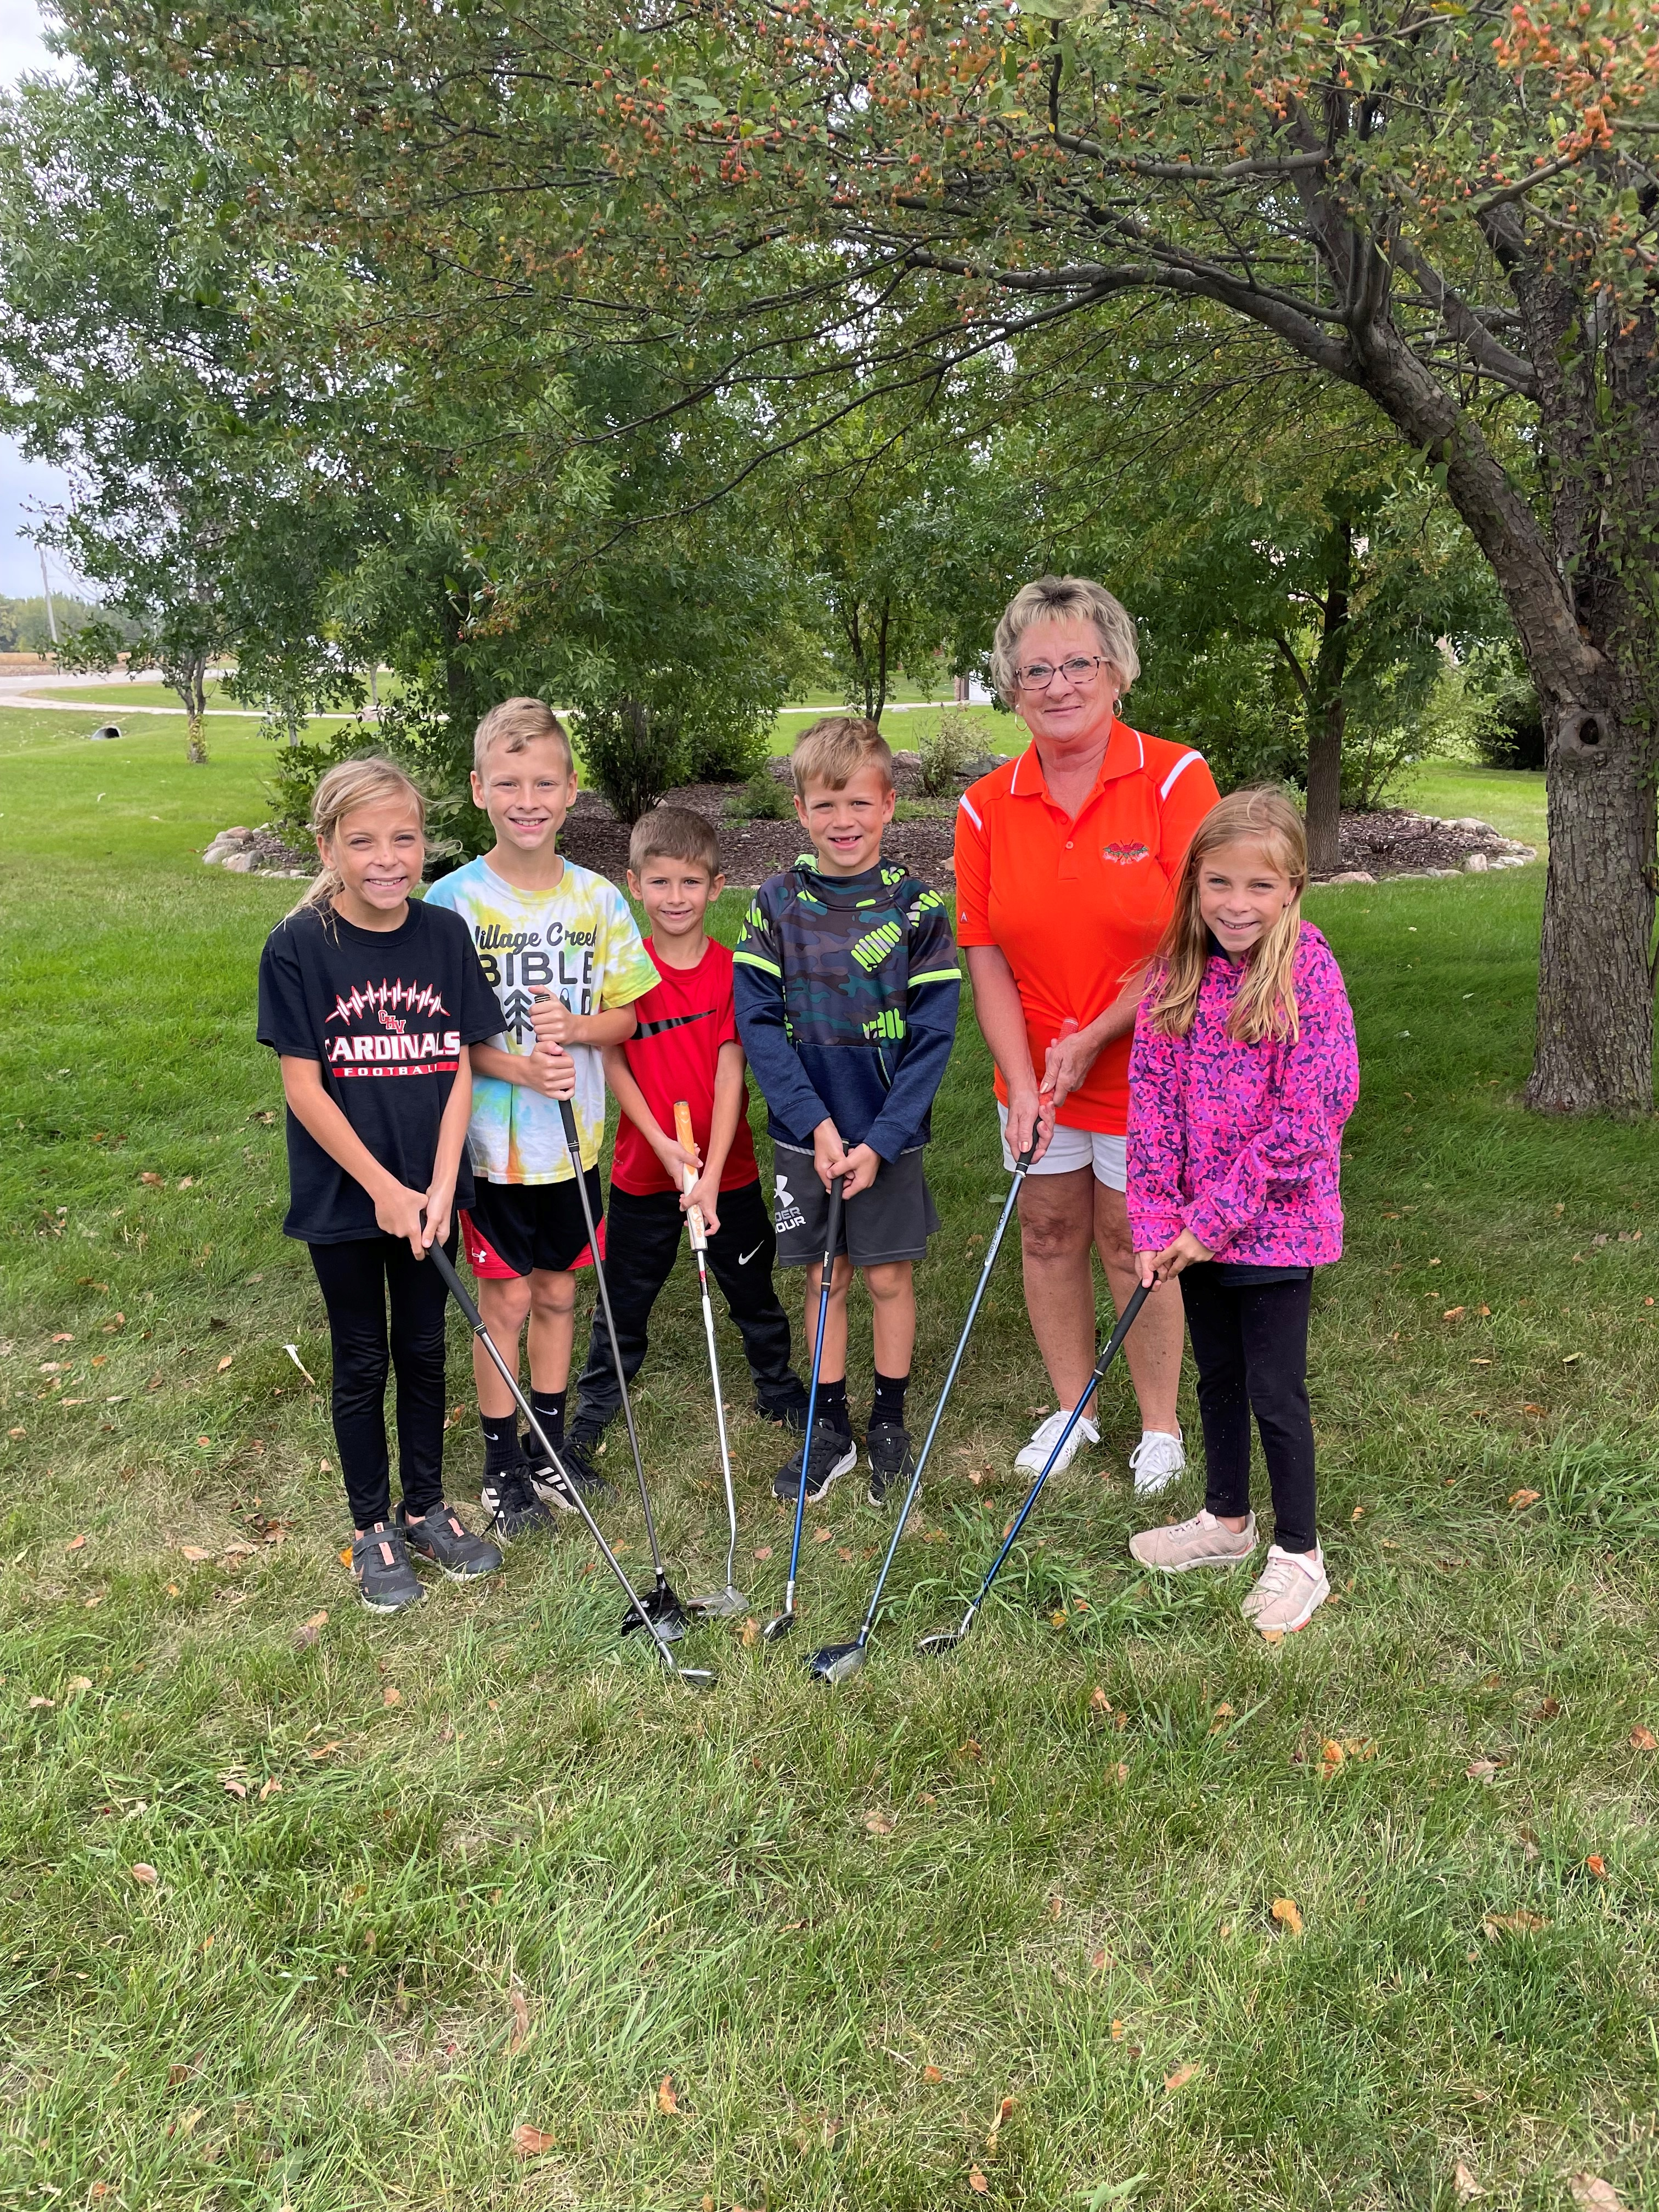 Garner Woman Gets Back To Active Life Quicker After Having A New, Innovative Bunion Surgery, Performed Only At The Mason City Clinic